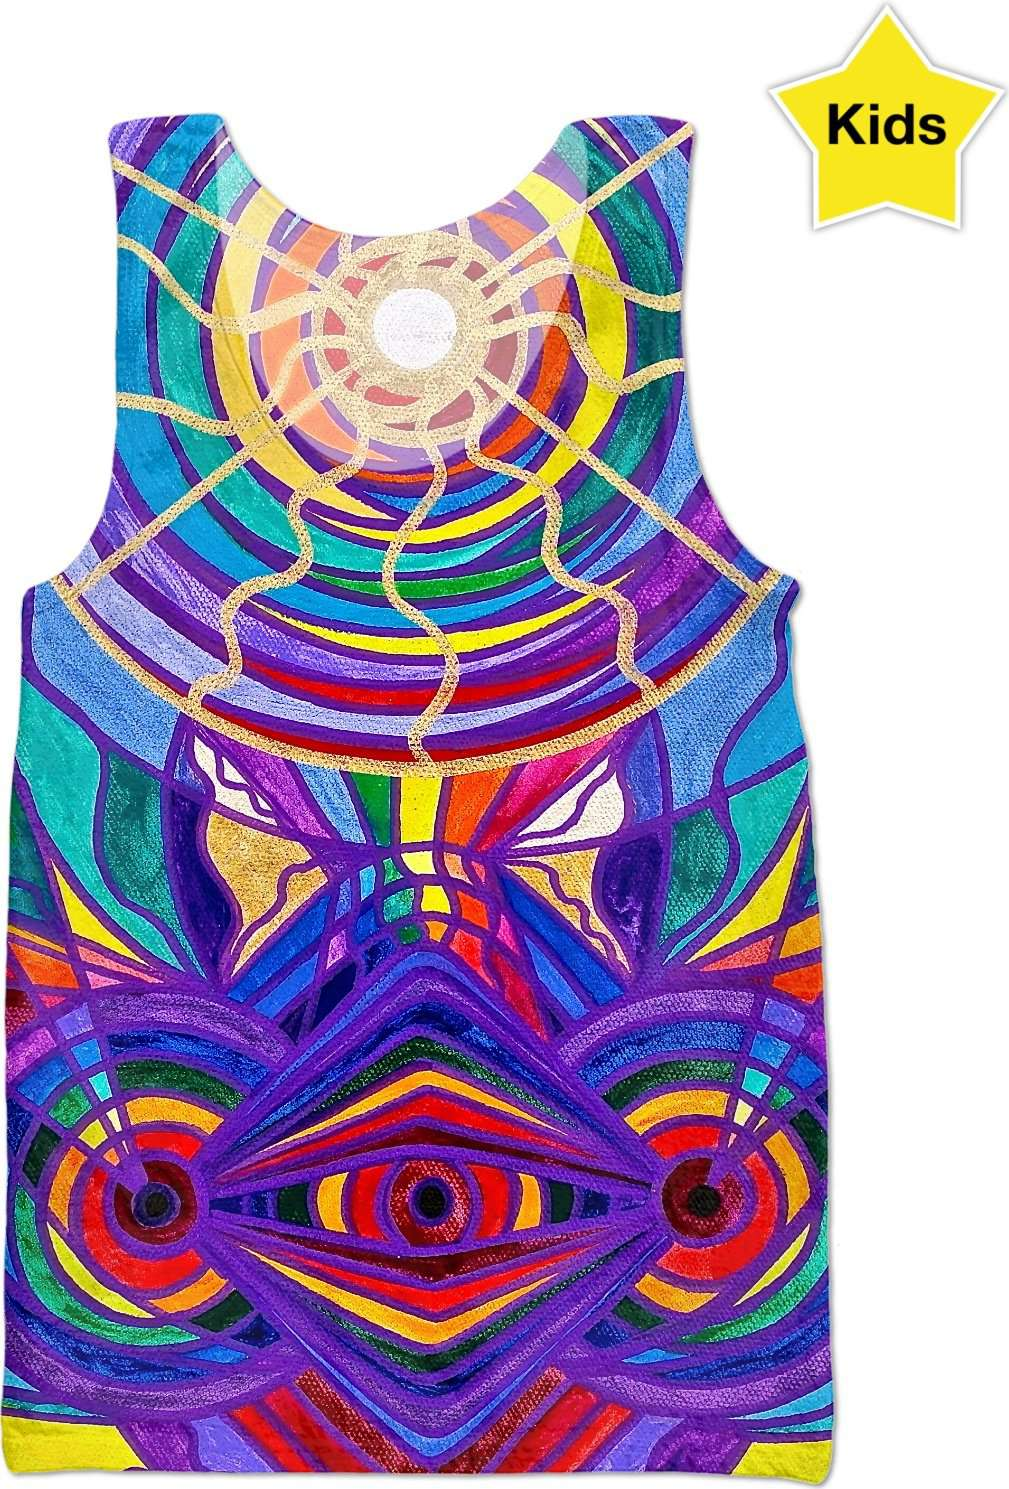 Raise Your Vibration - Kids Tank Top